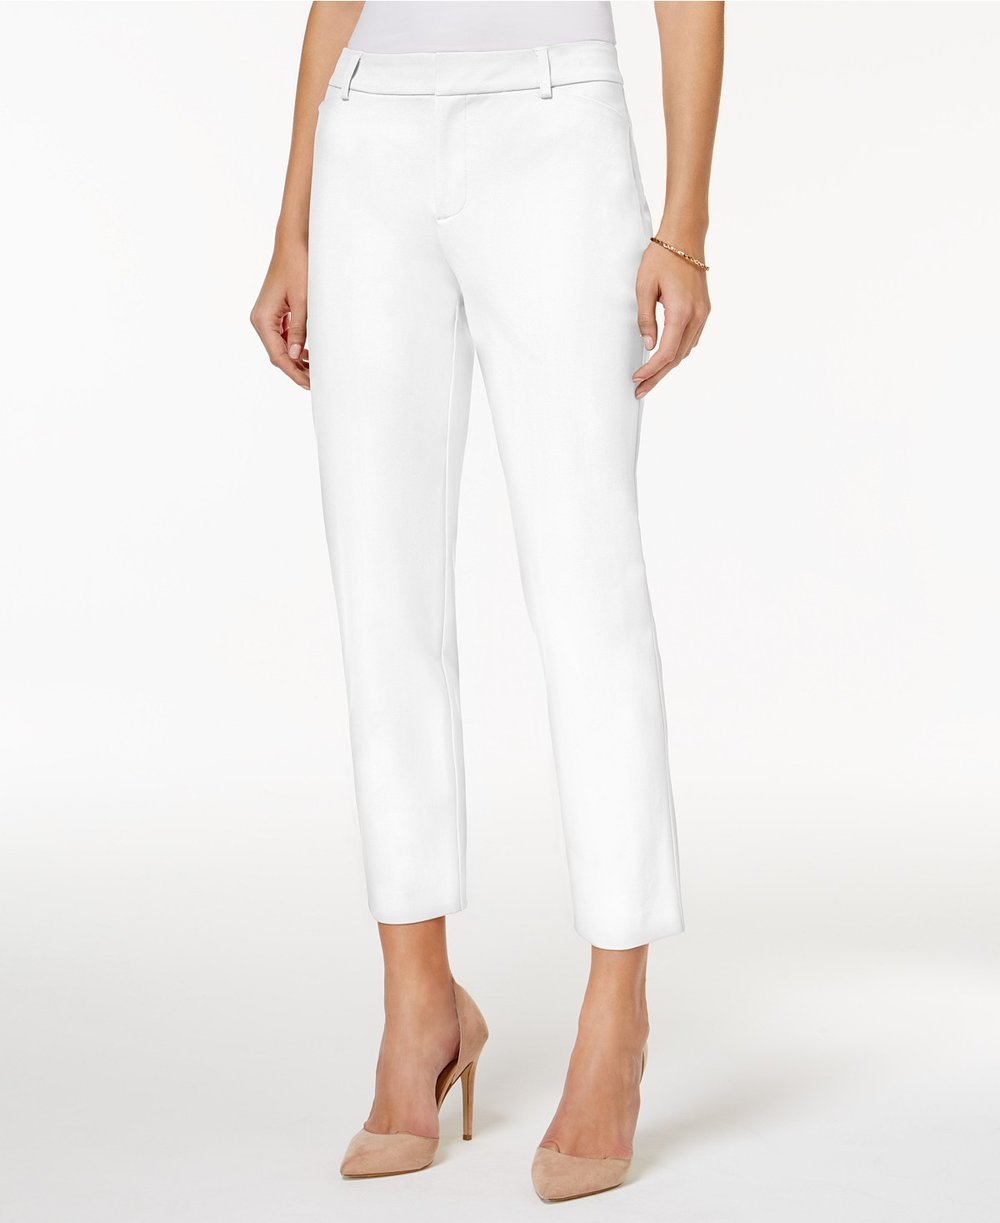 Charter Club  Petite Cropped Pants. Available in multiple colors. Macy's. $69.